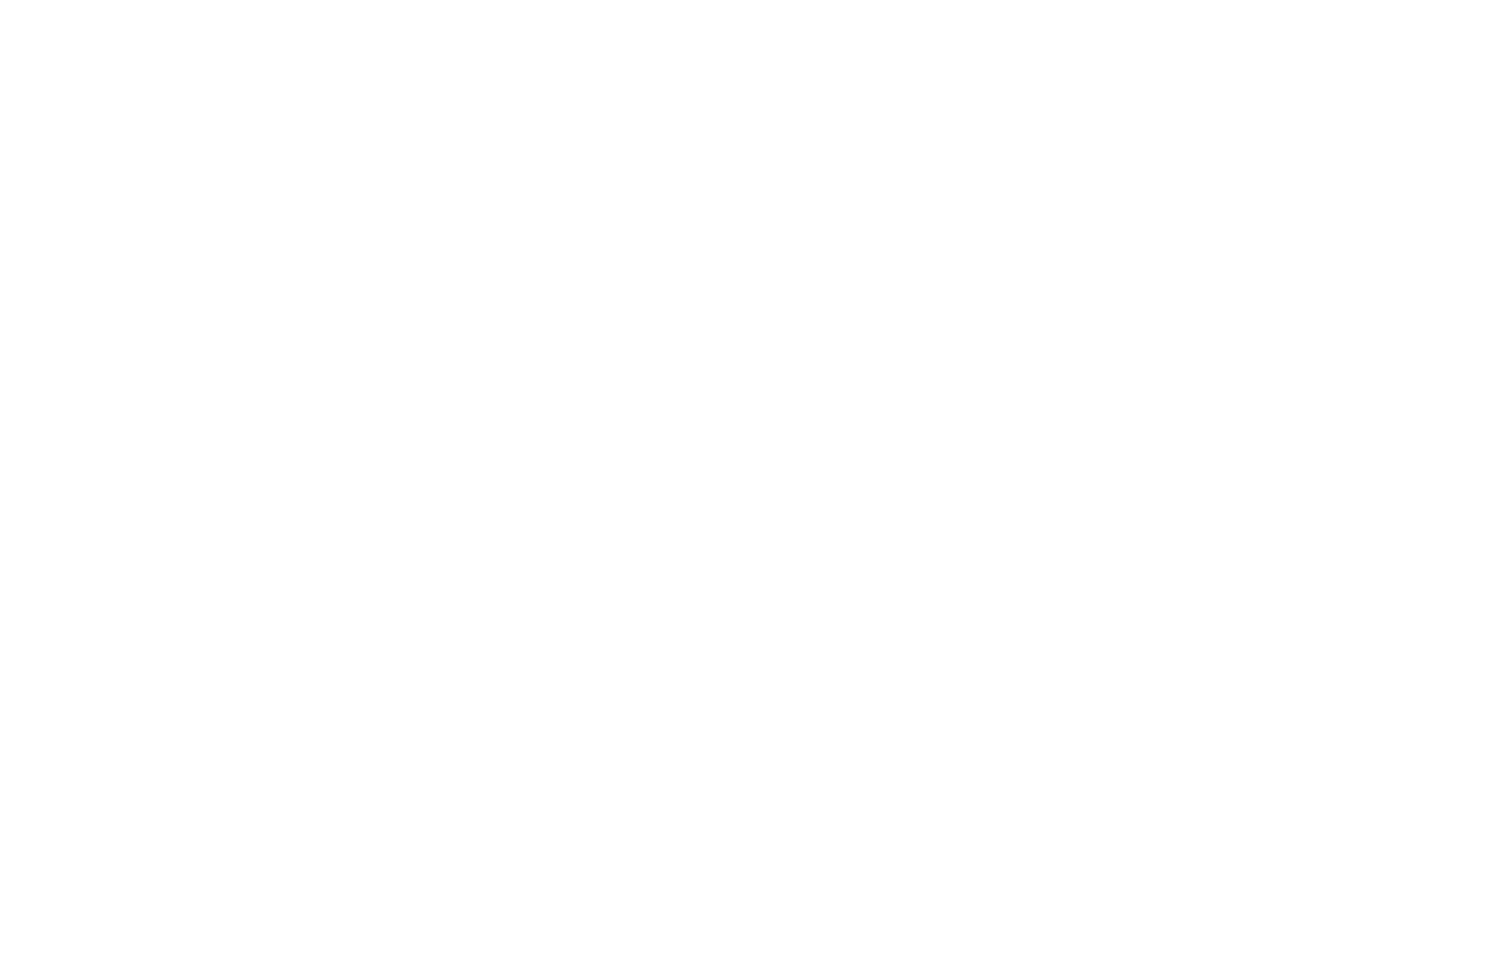 Tyler Simien Photo + Design